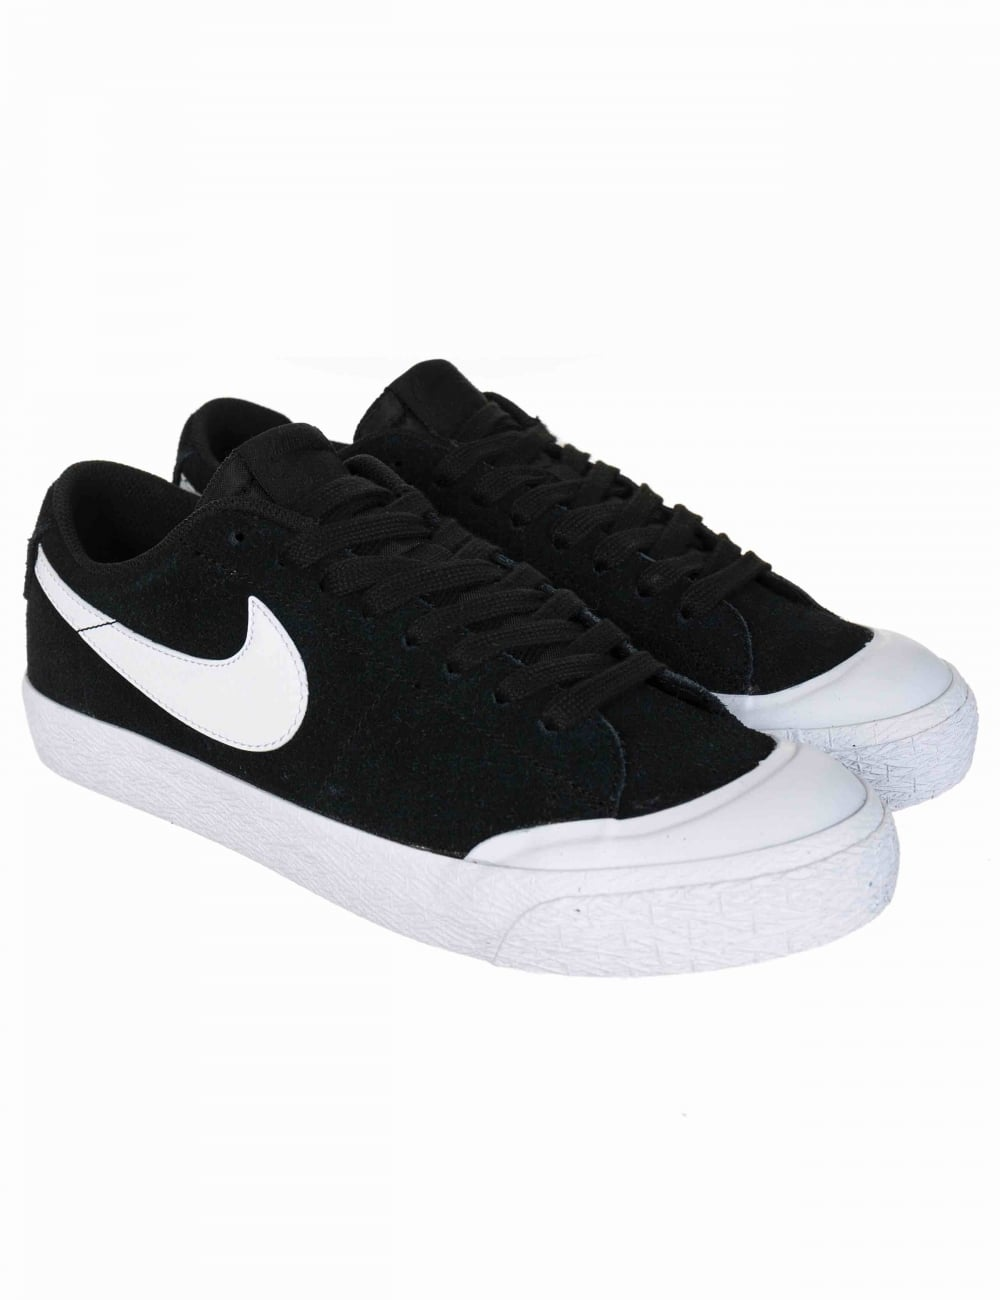 huge selection of 01139 5d4cb Blazer Zoom Low GT Shoes - Black/White